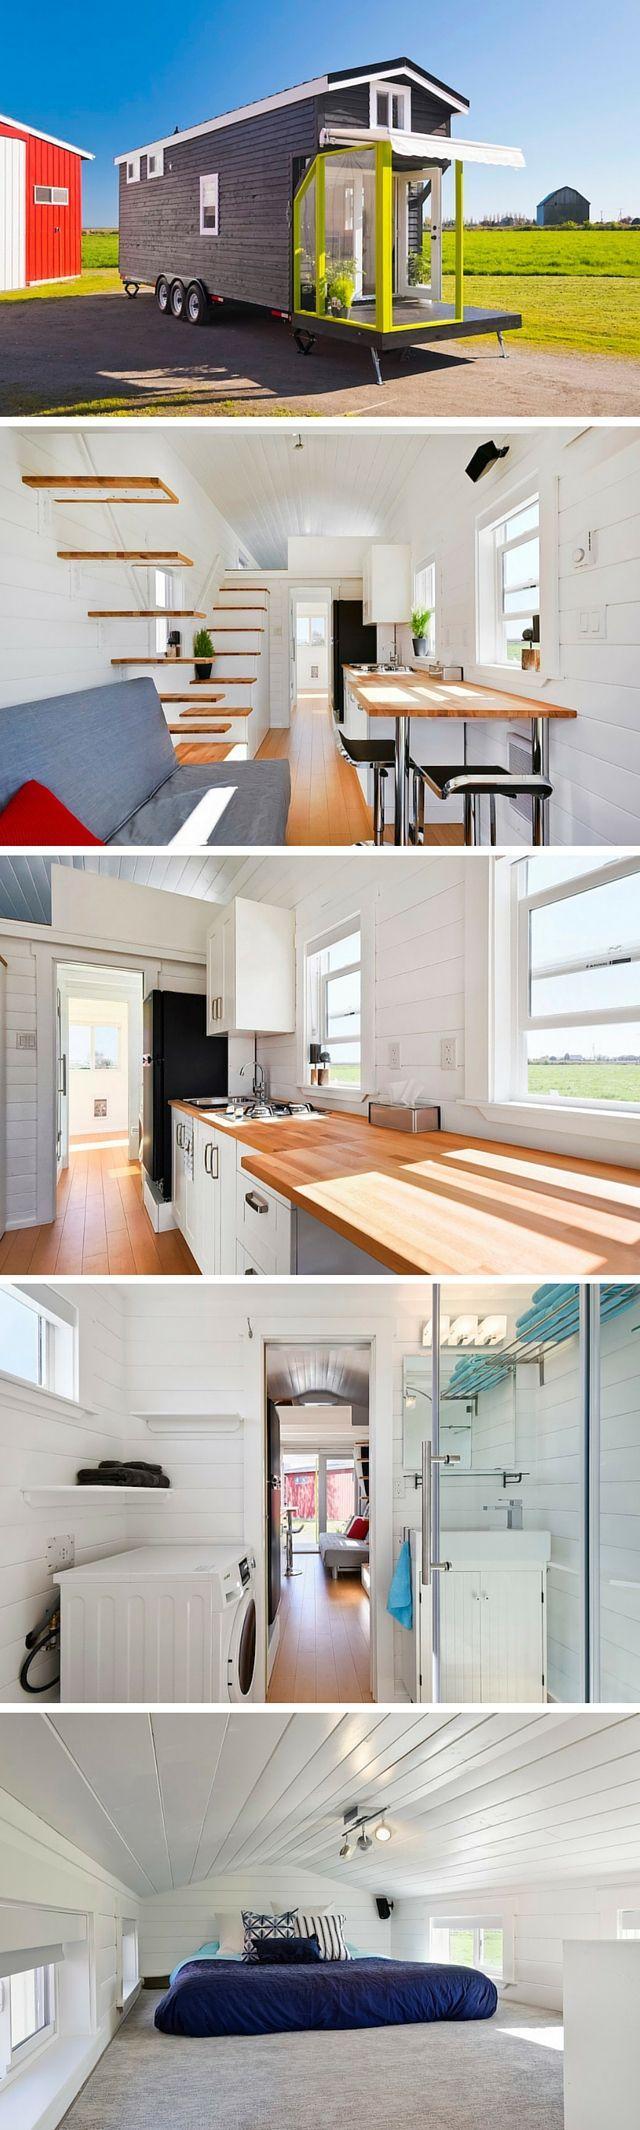 Tiny House On Wheels Two Lofts simple how to build a tiny house | more tiny living and tiny